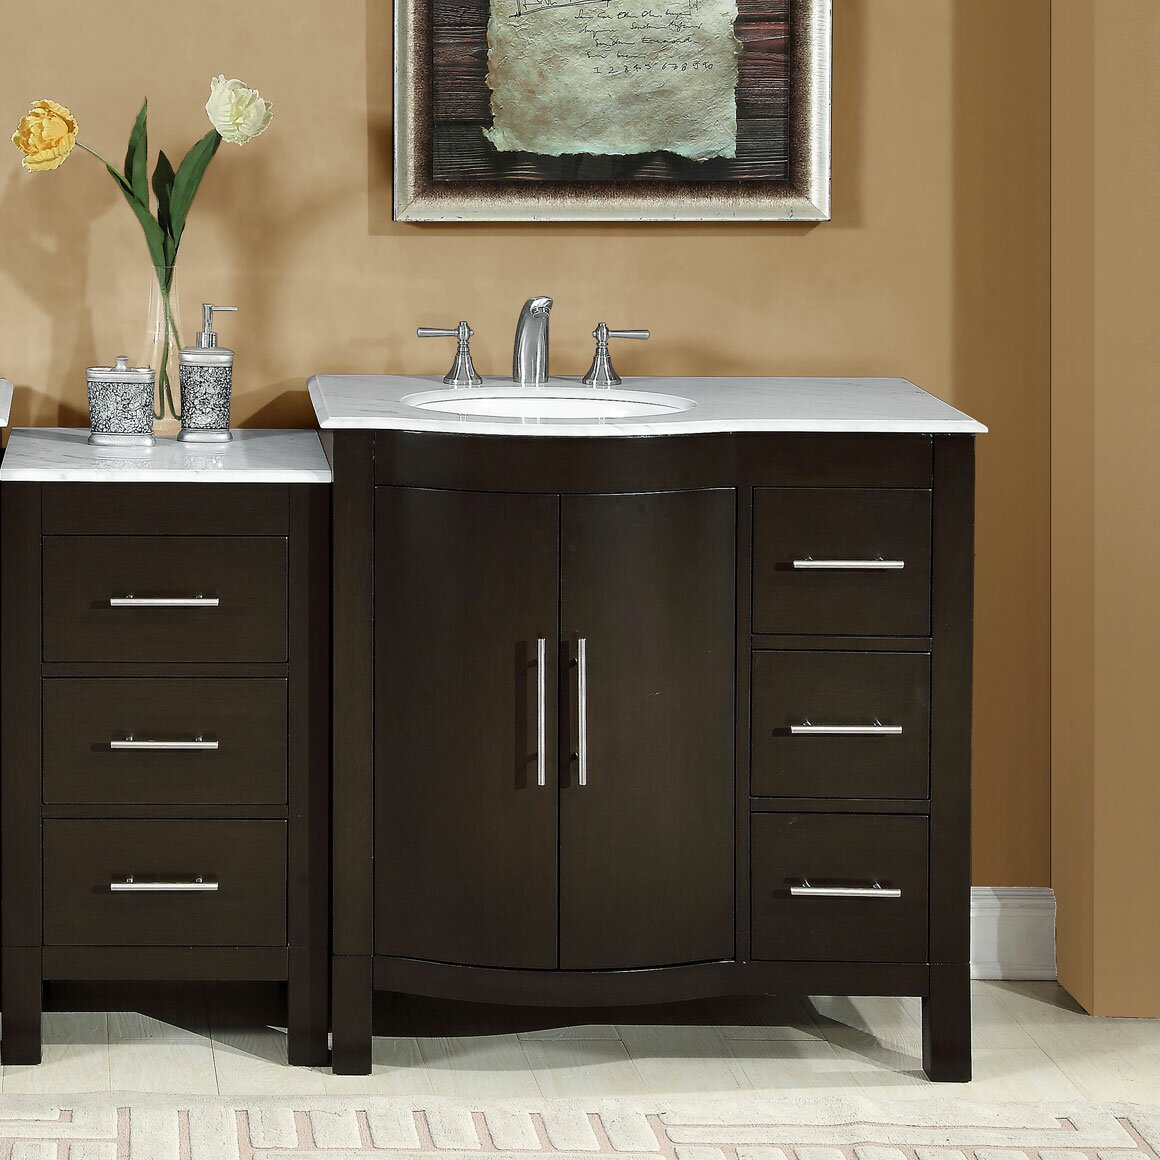 Silkroad exclusive 53 5 single sink lavatory cabinet modular bathroom vanity set reviews for Prefabricated bathroom cabinets